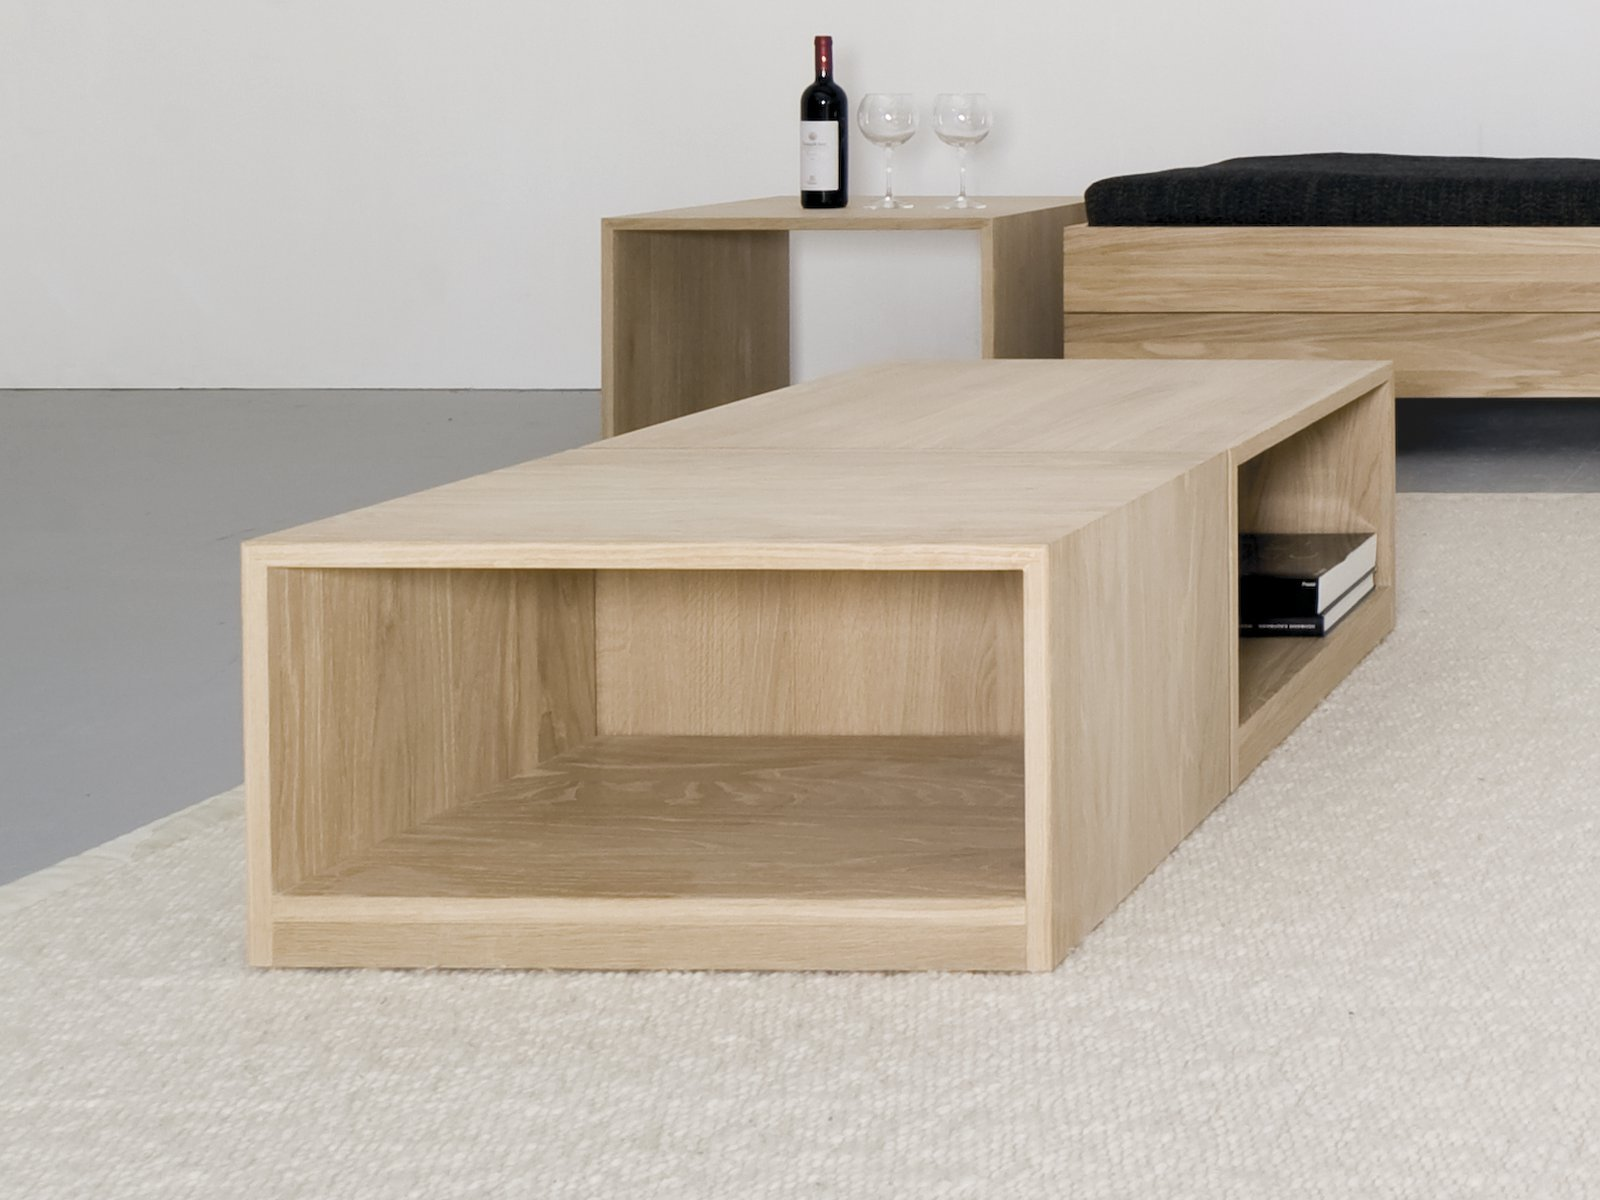 hocker couchtisch aus massivem holz relikt by. Black Bedroom Furniture Sets. Home Design Ideas